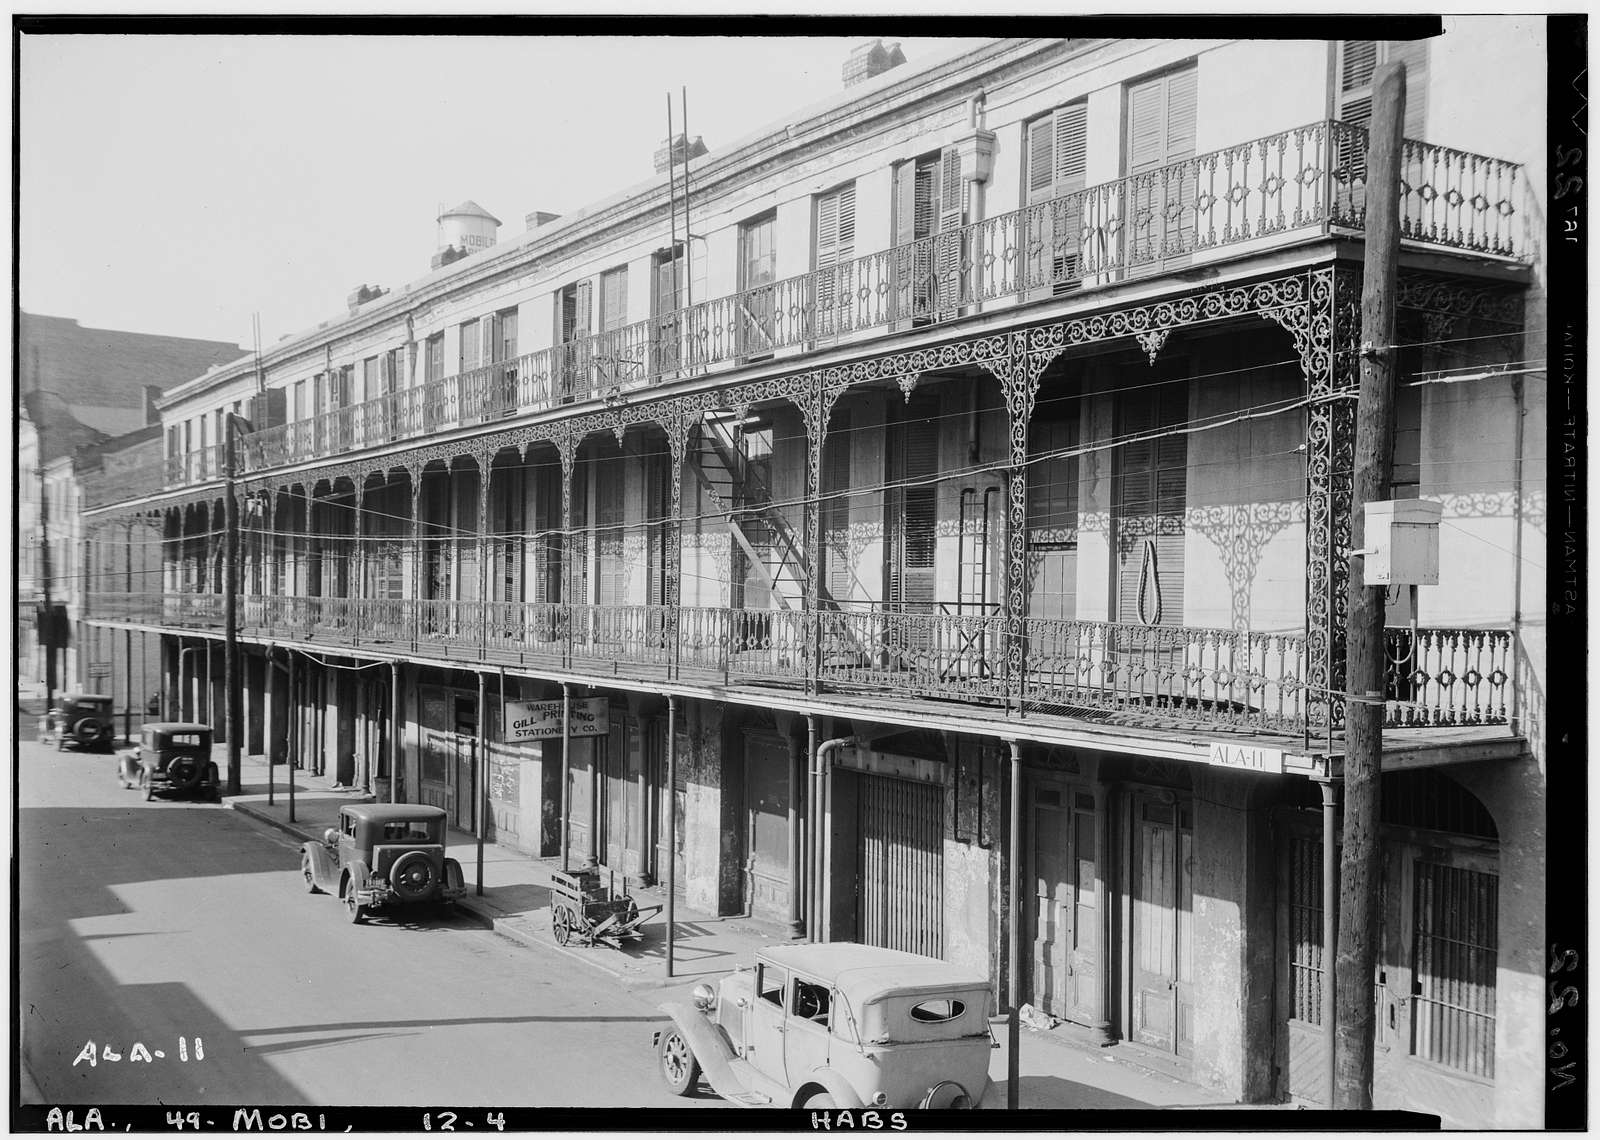 Southern Hotel, 53-65 Water Street, Mobile, Mobile County, AL